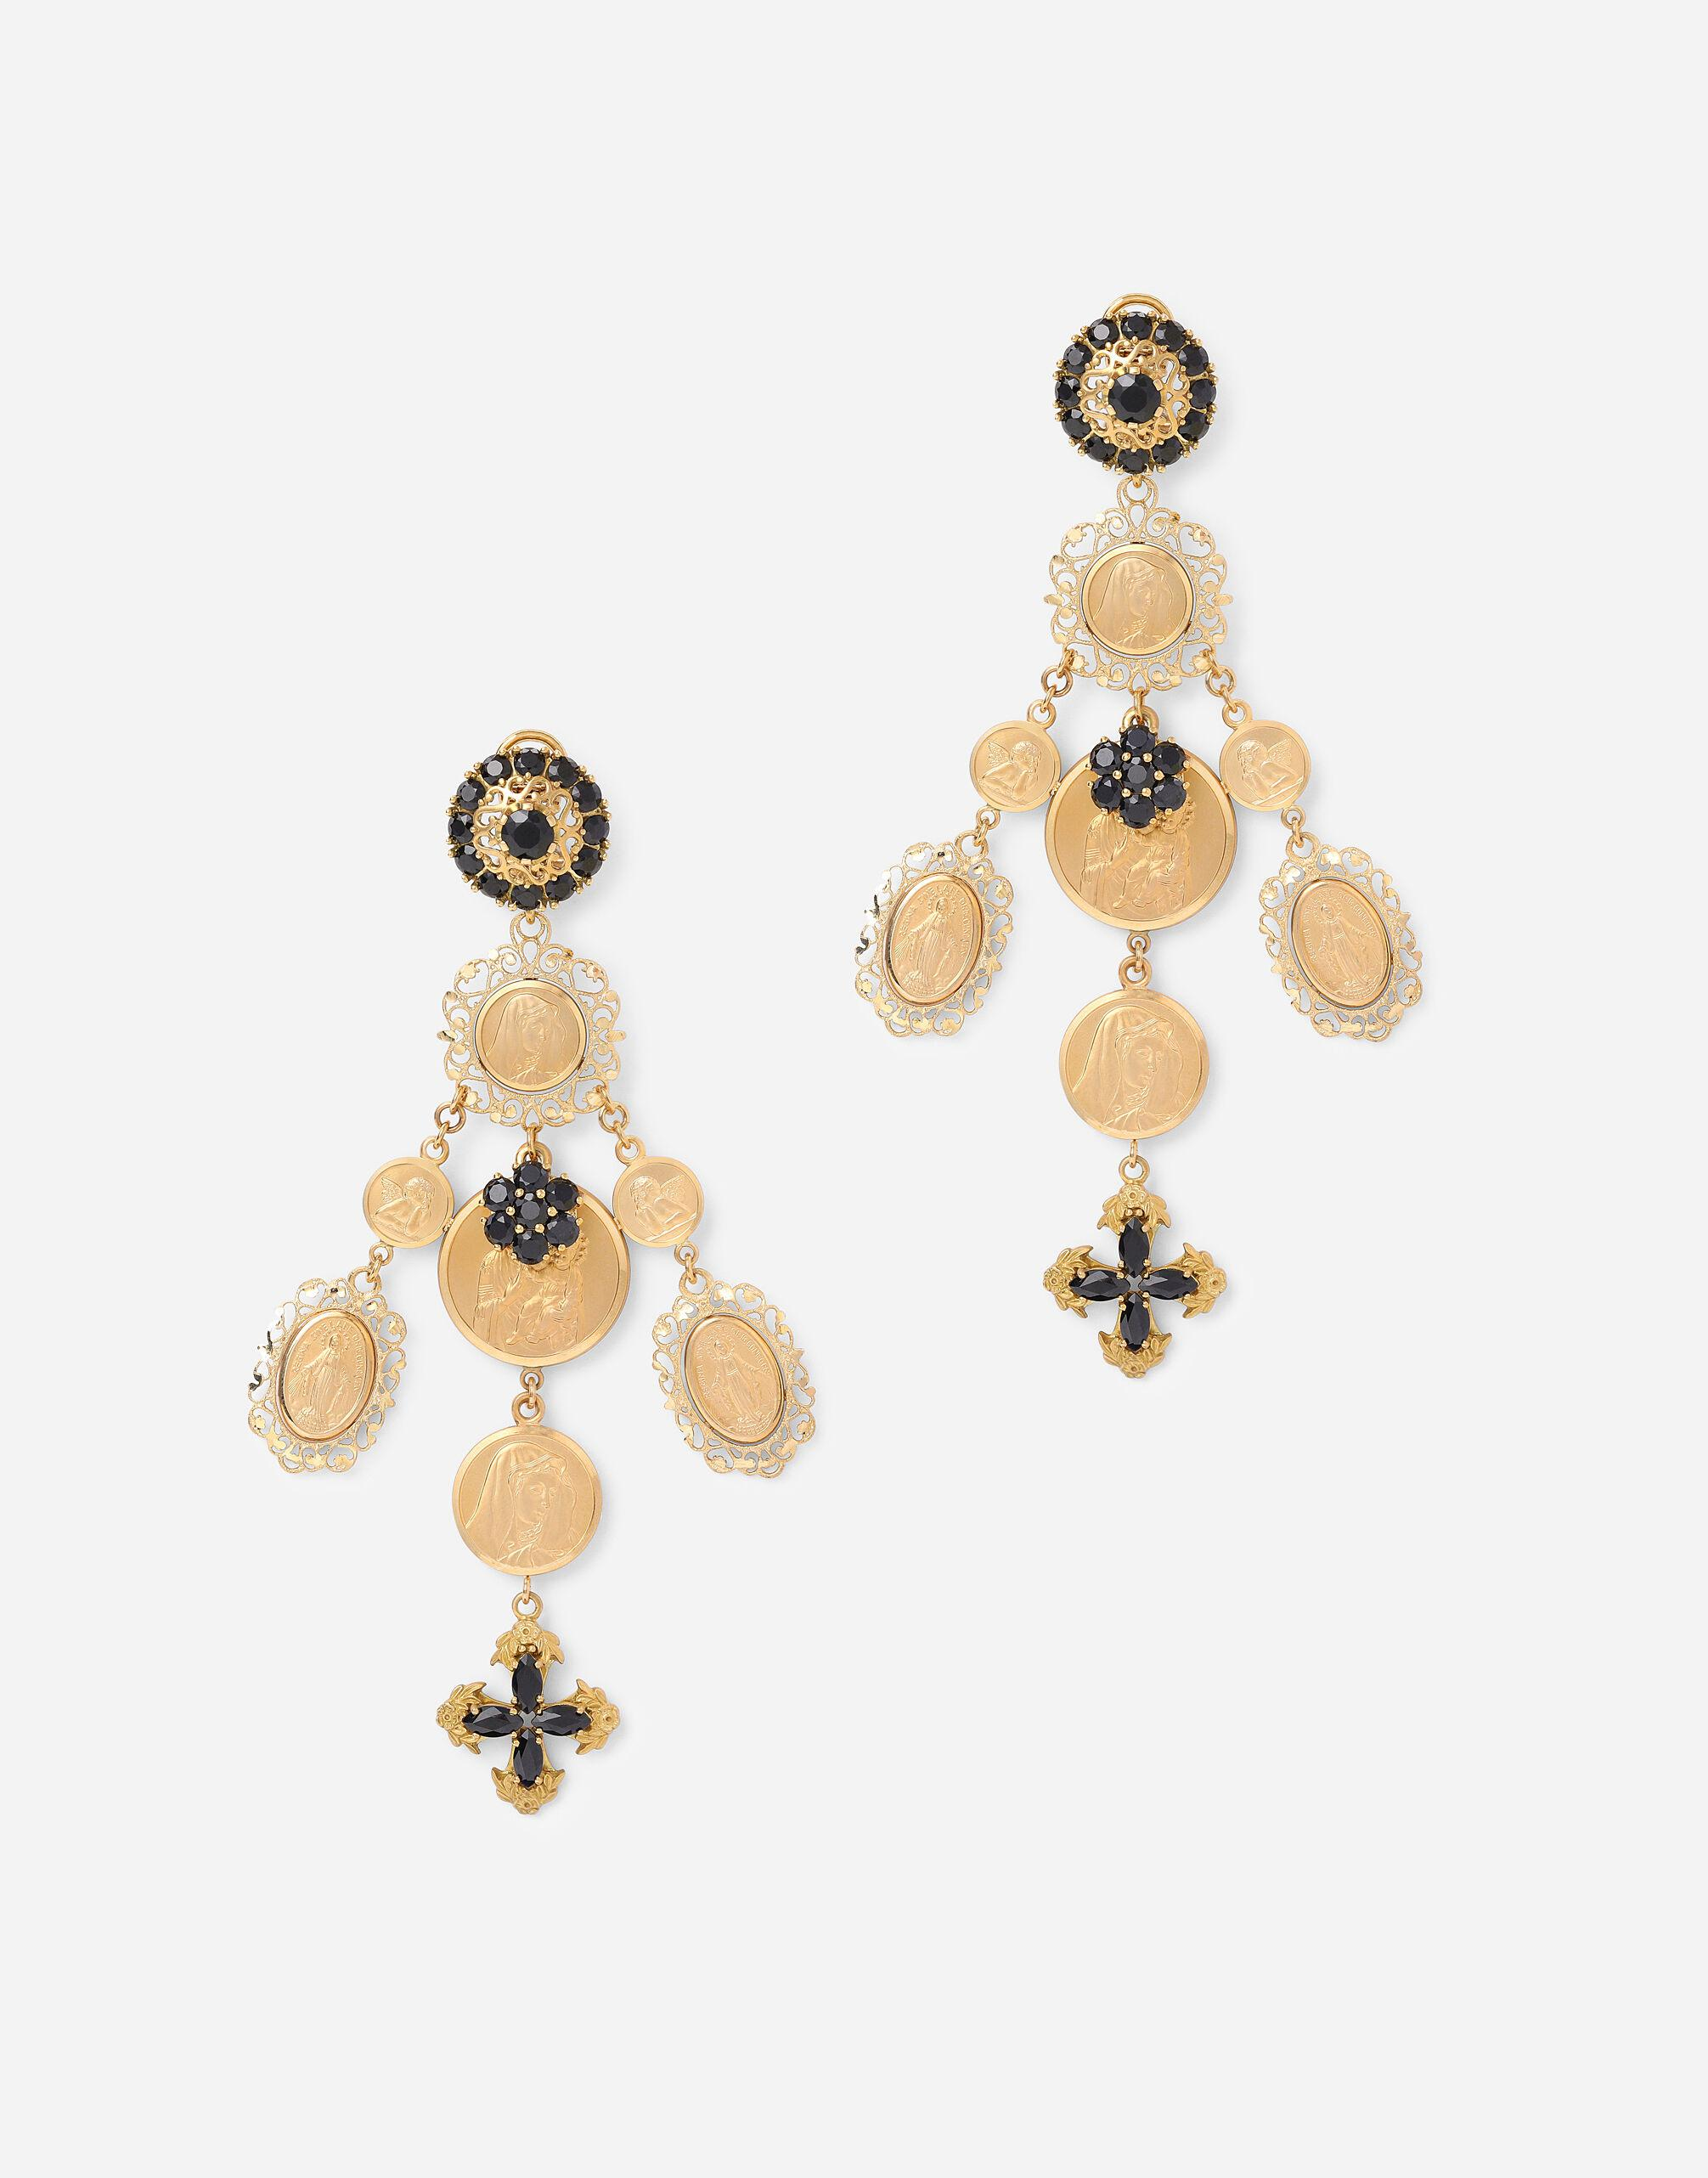 Sicily earrings in yellow 18kt gold with medals